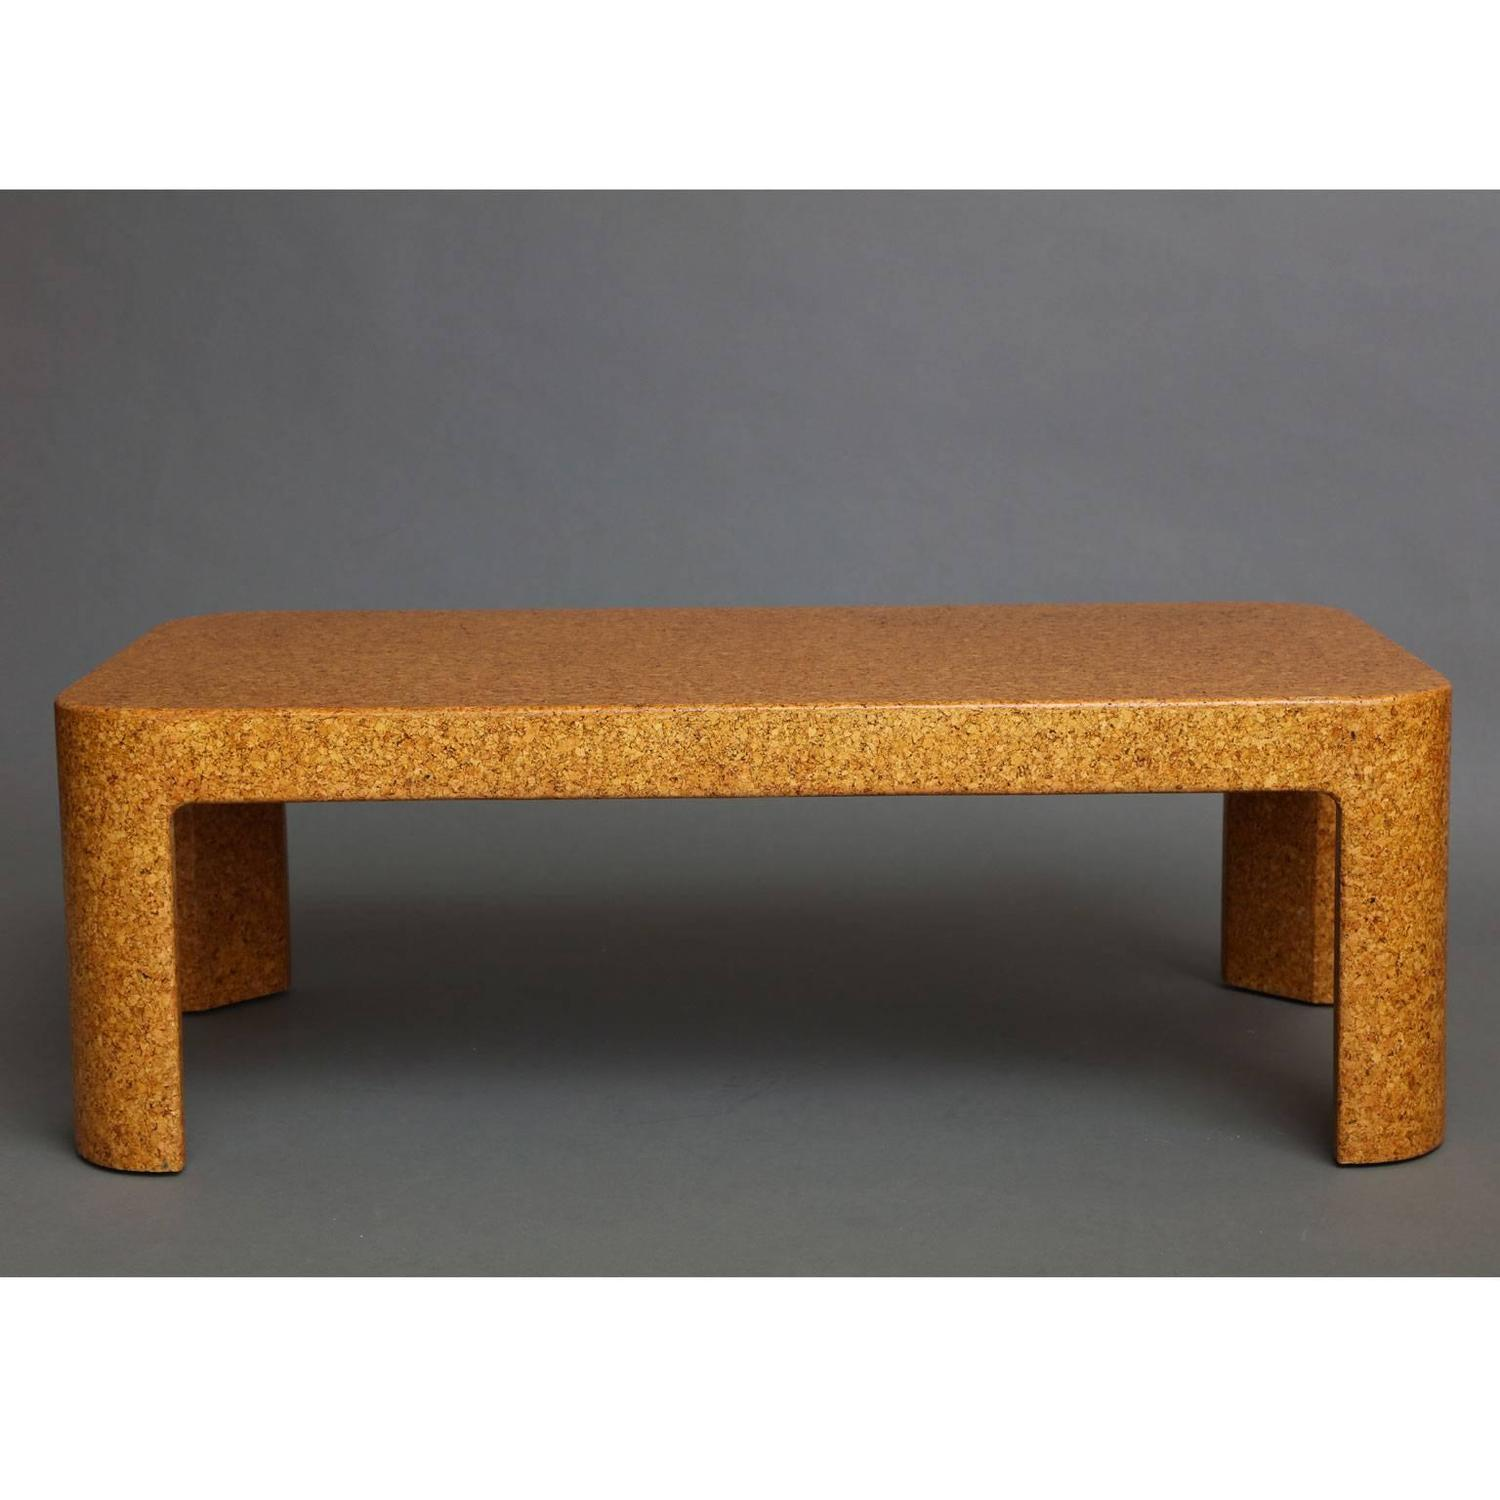 Samuel Marx Cork Coffee Table For Sale At 1stdibs